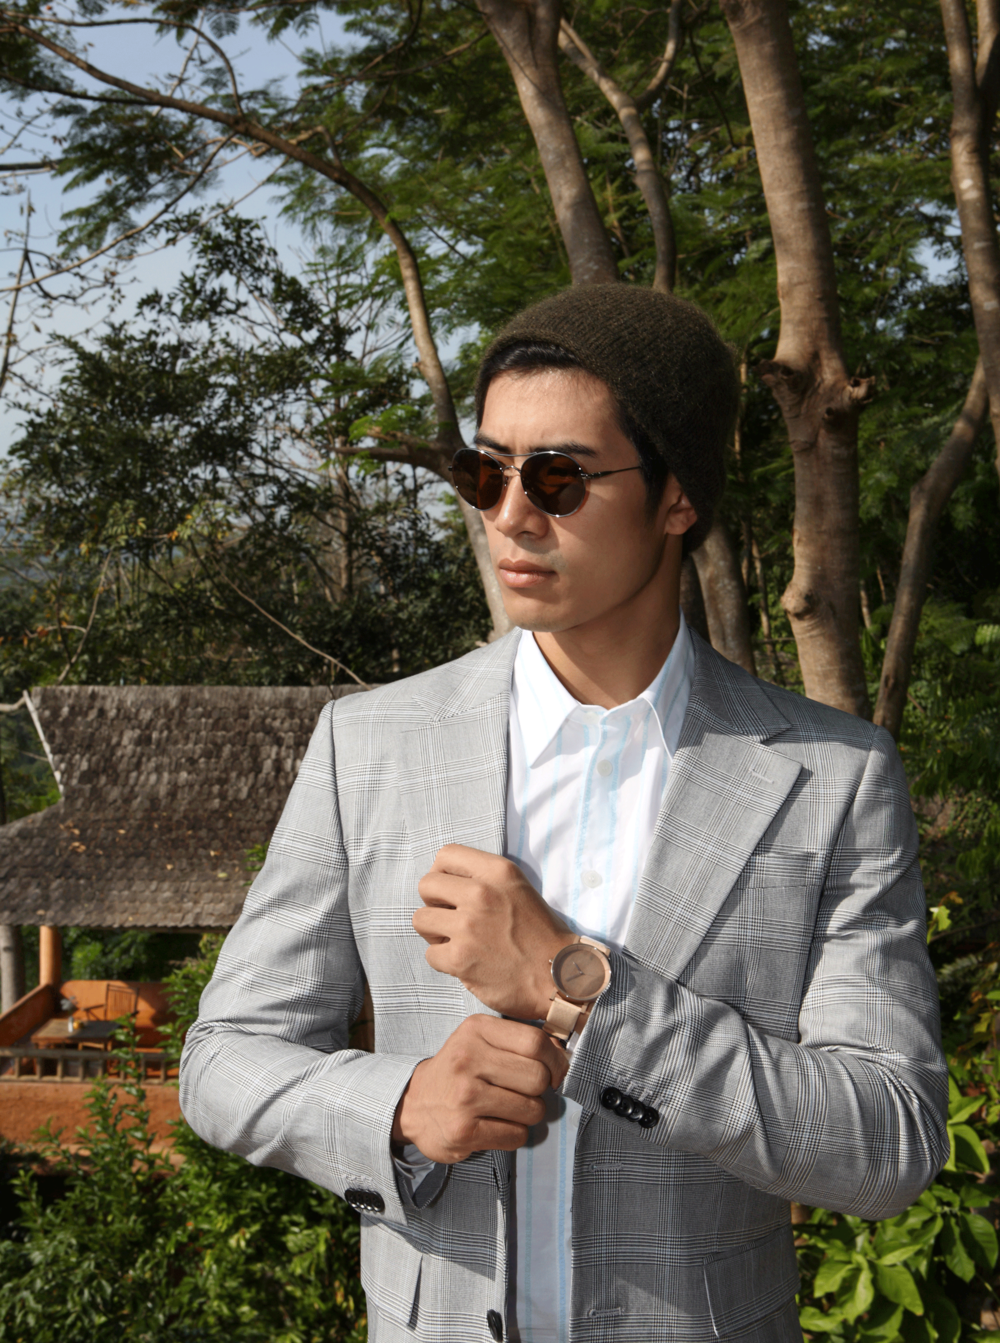 clothes : CK Calvin Klein / sunglasses : TAVAT / watch : FORREST